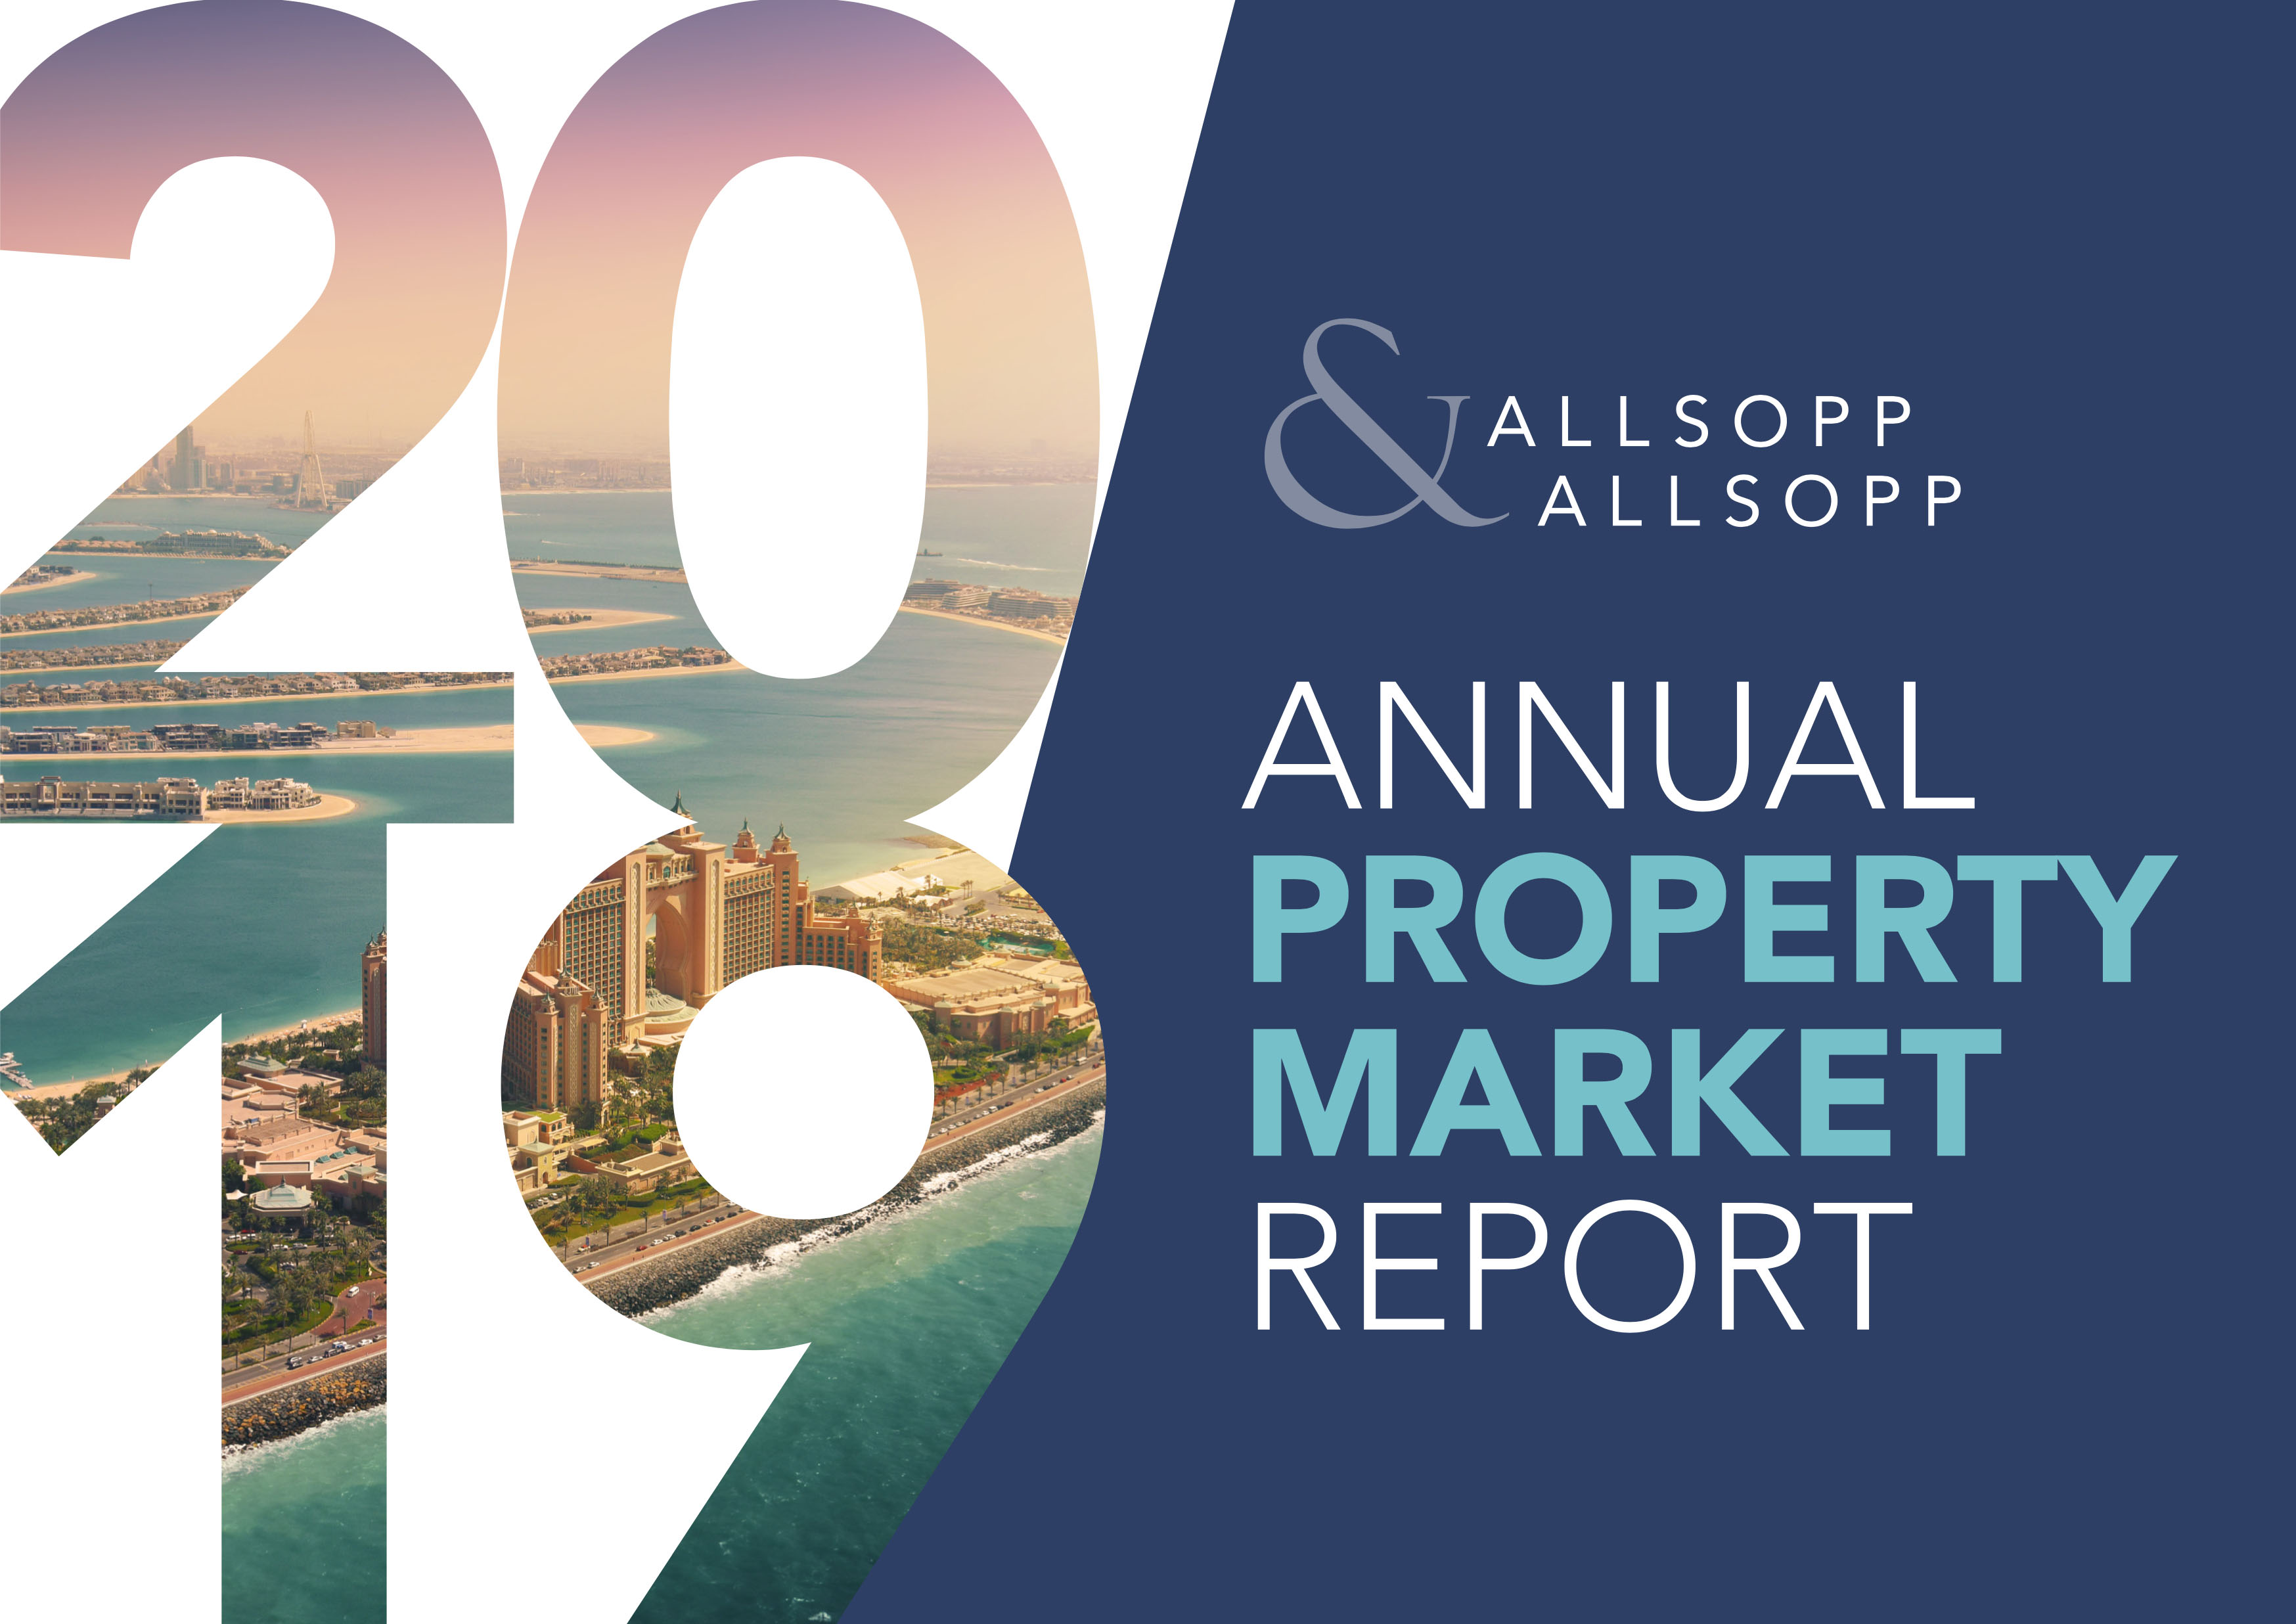 Allsopp and Allsopp Annual Report 2019 Main